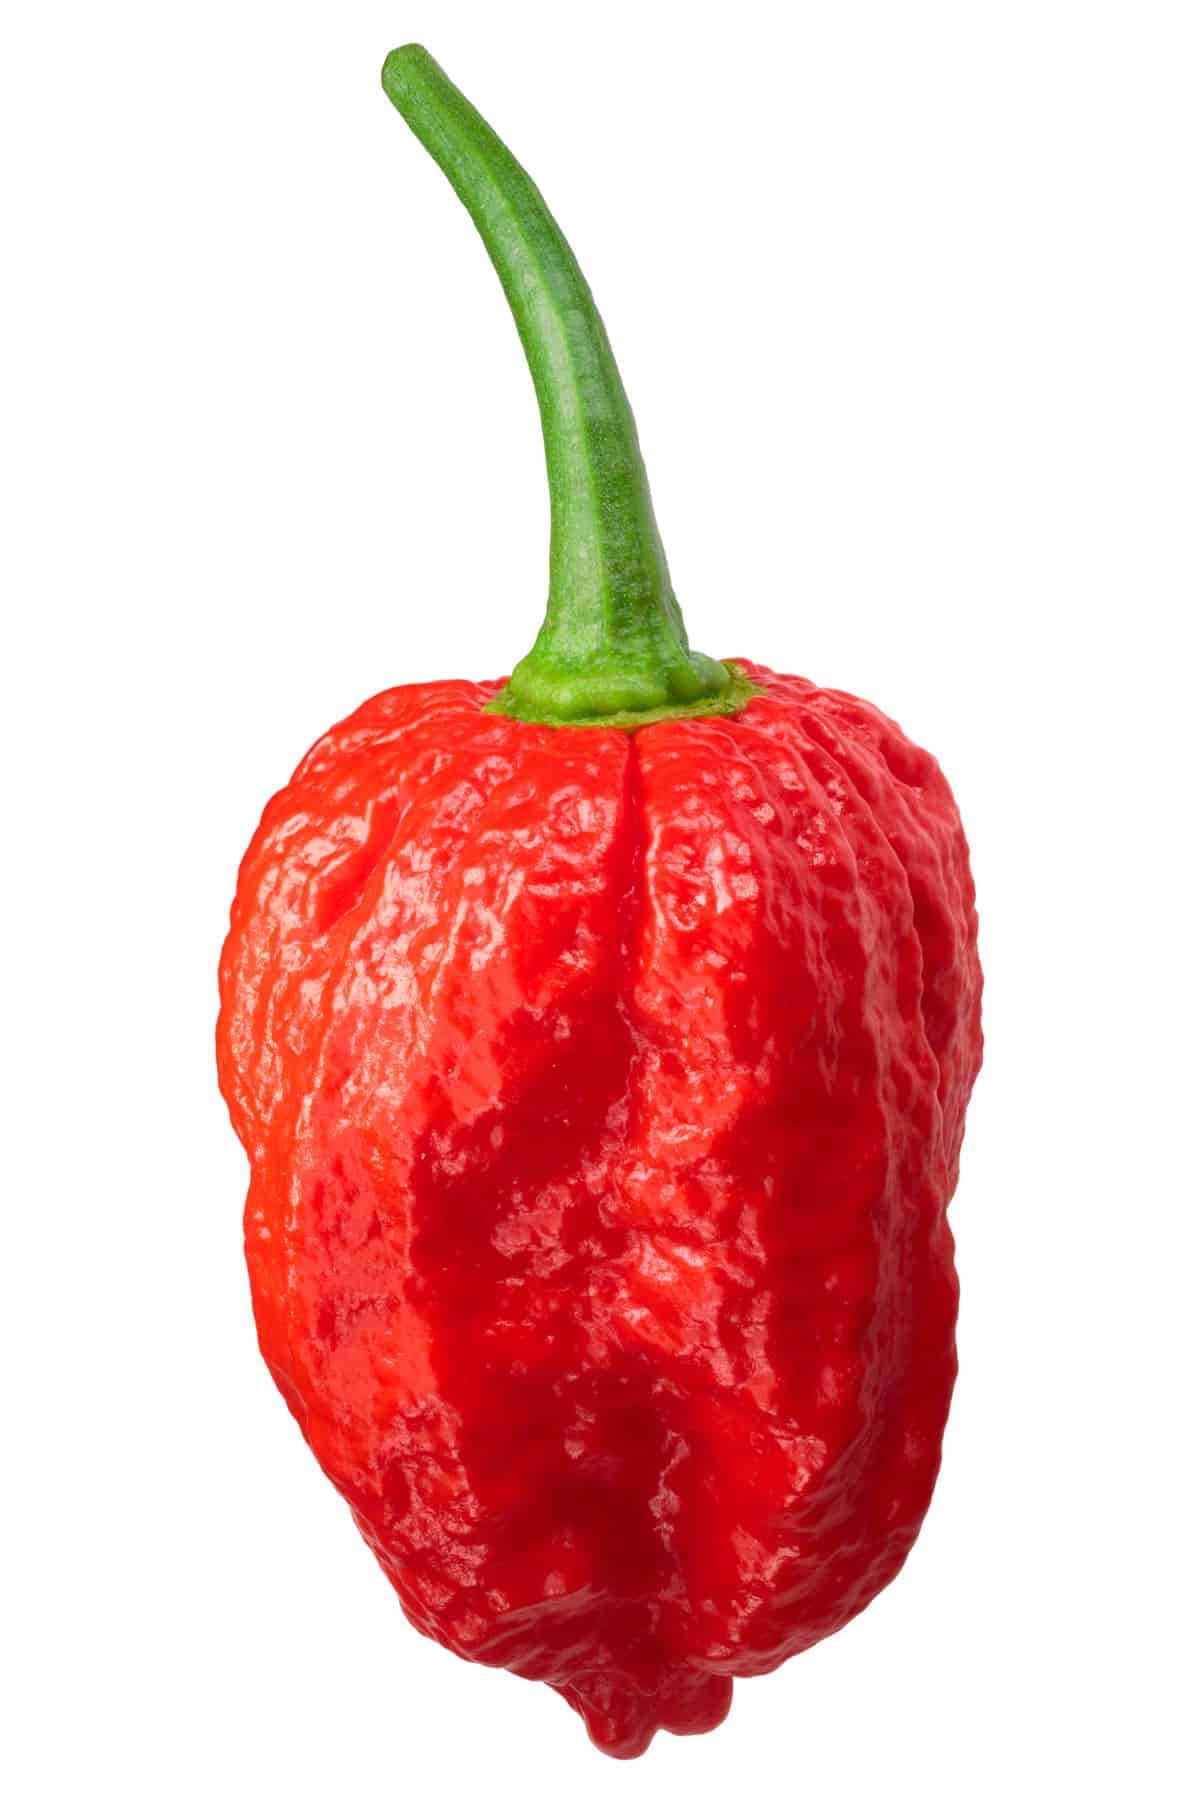 Dorset Naga: Superhot Pepper with Great Flavor